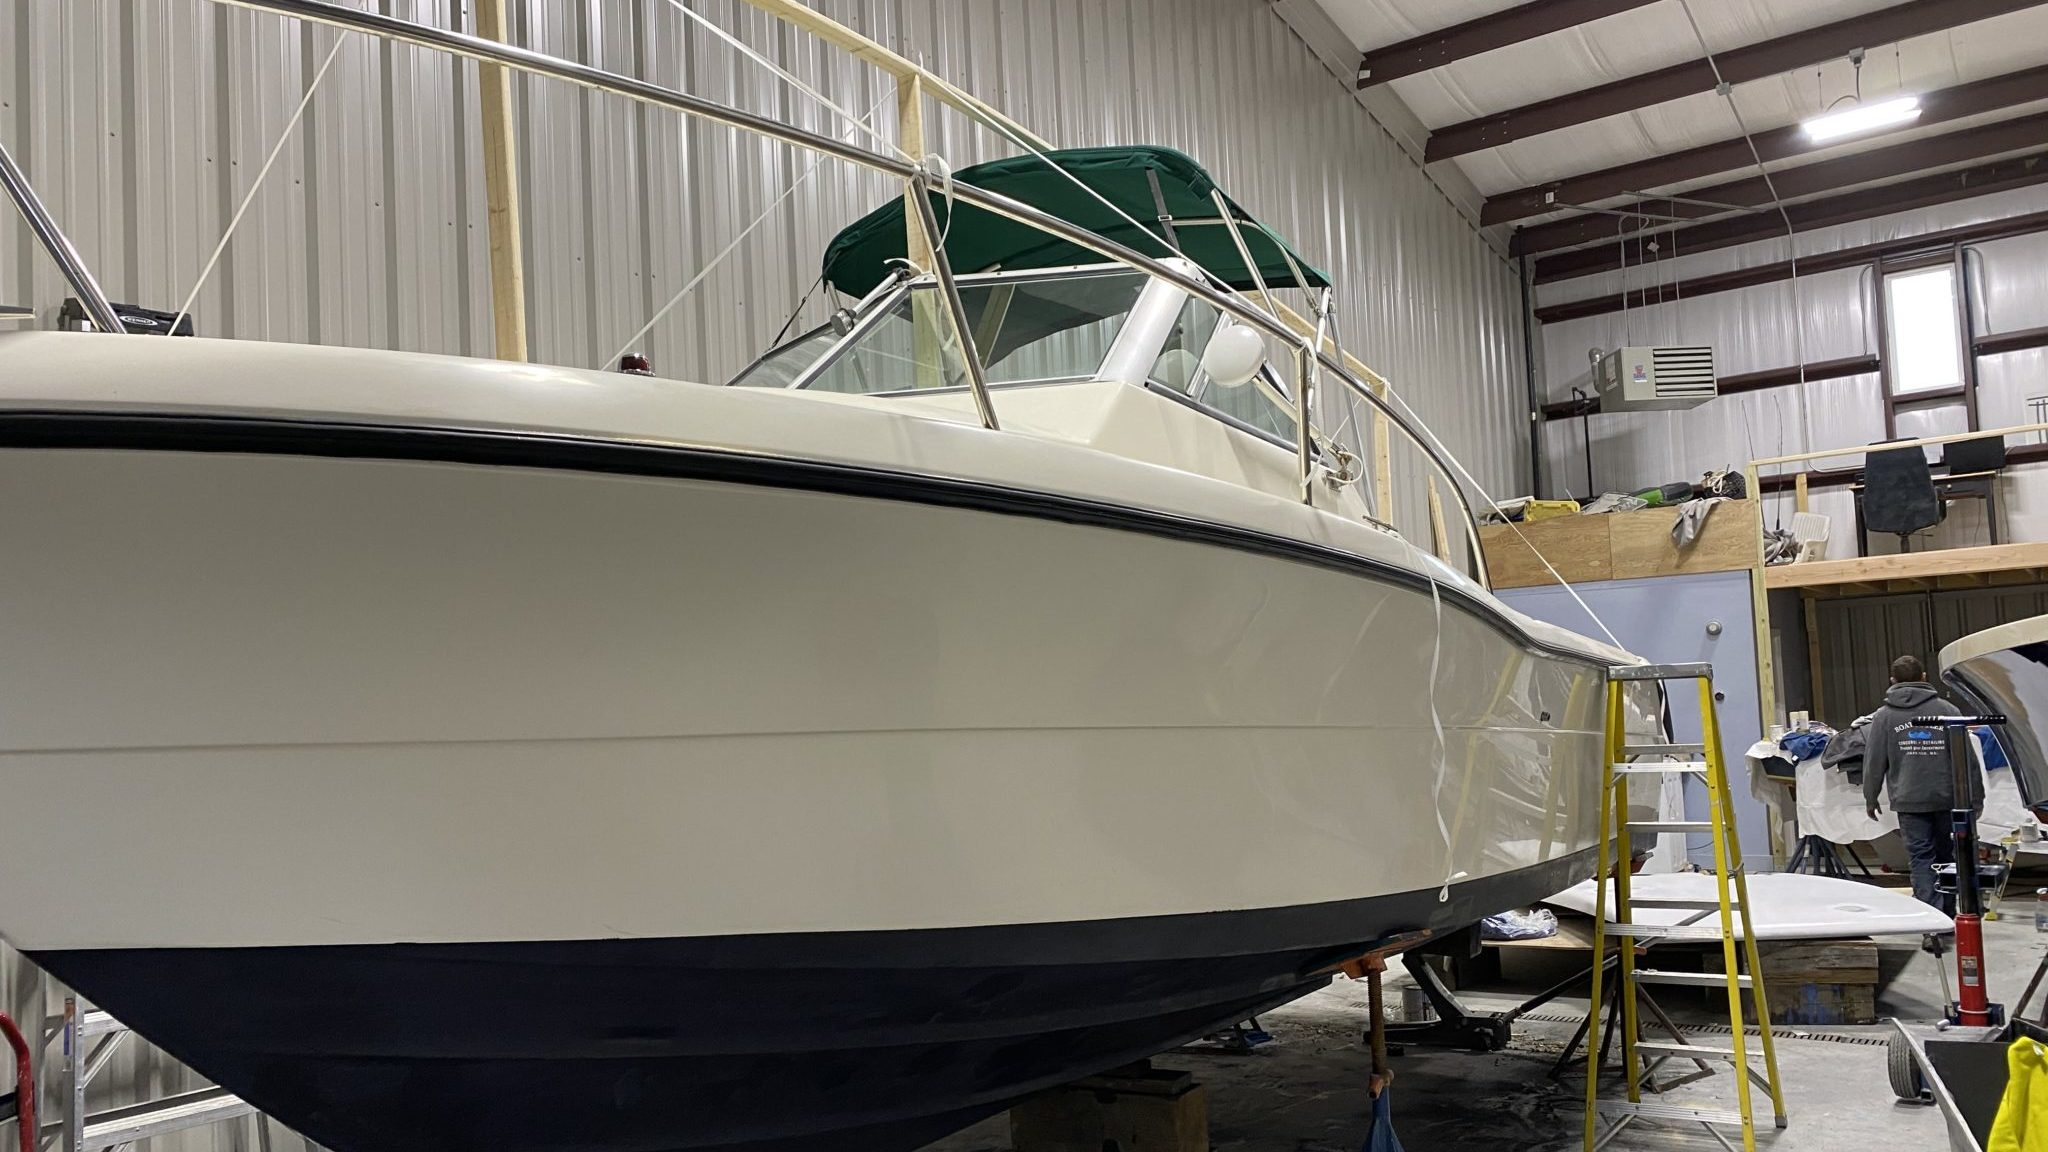 Storing Your Boat At Home:  Pros And Cons